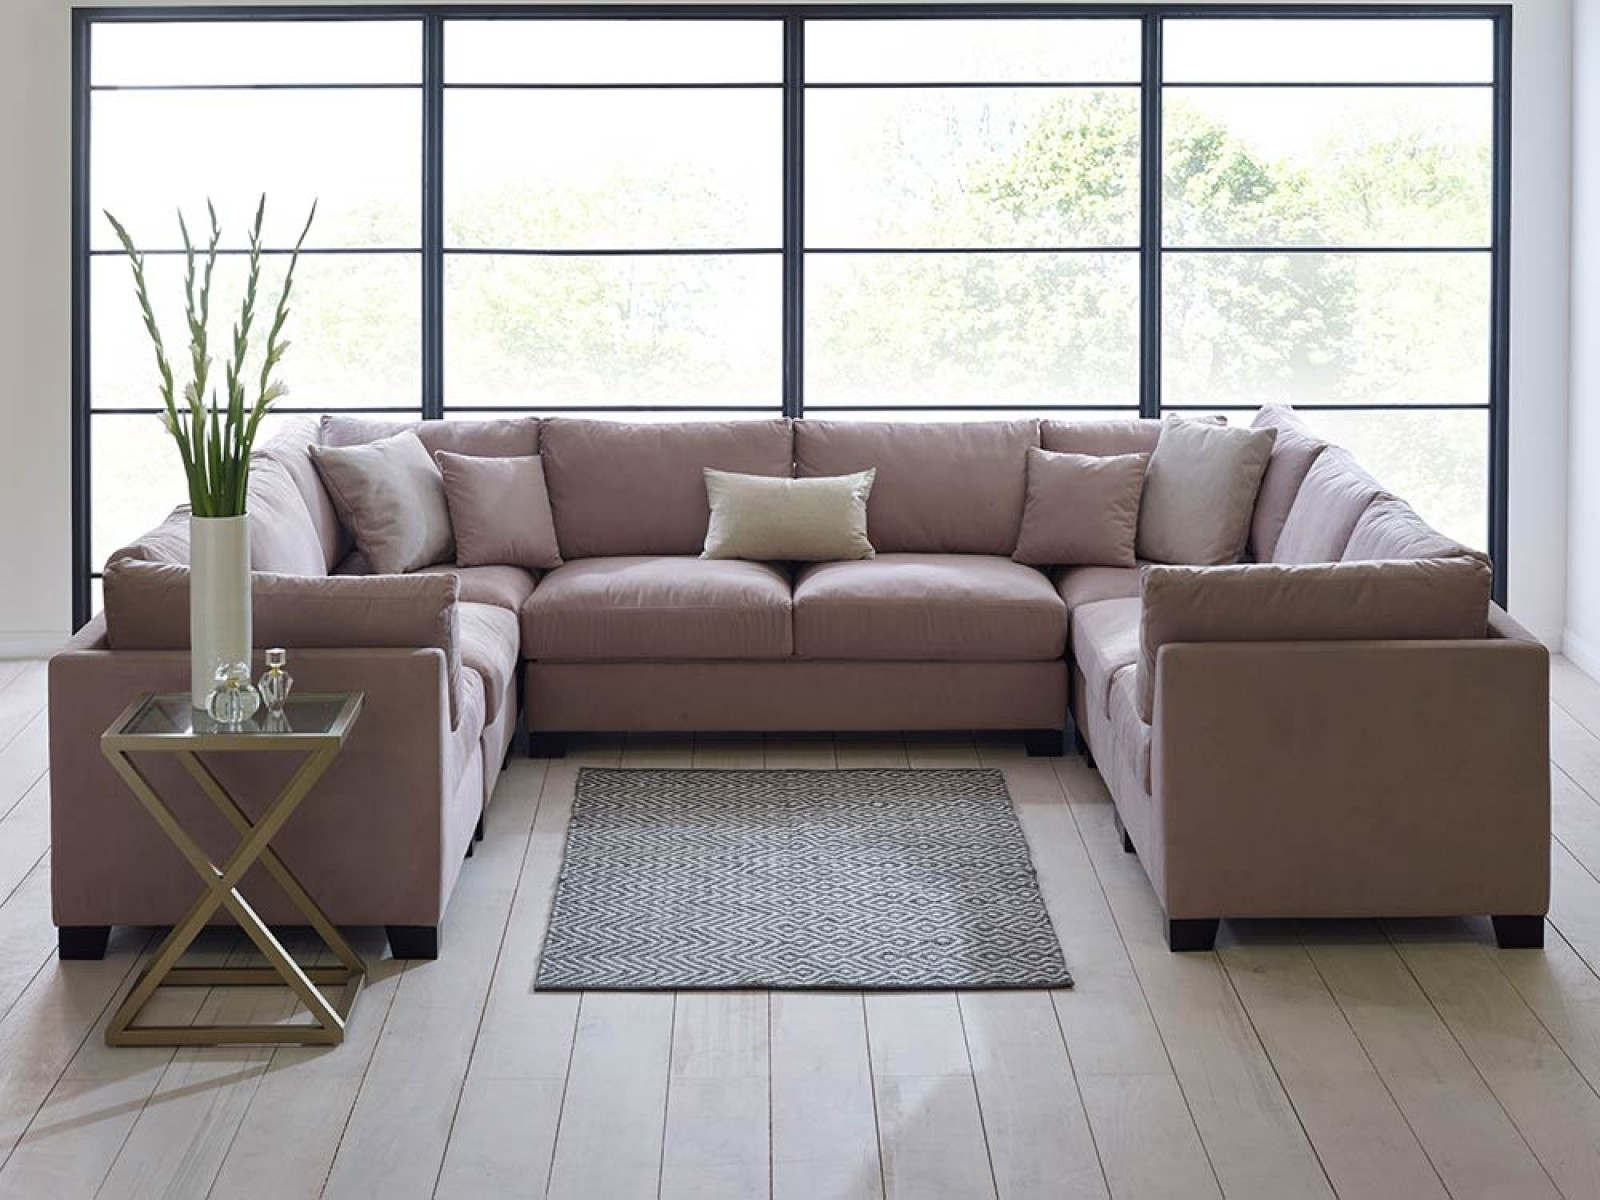 Sofa : U Shaped Modular Sofa Stylish Sofa Sectional Sofa Set Large Intended For Huge U Shaped Sectionals (View 7 of 15)